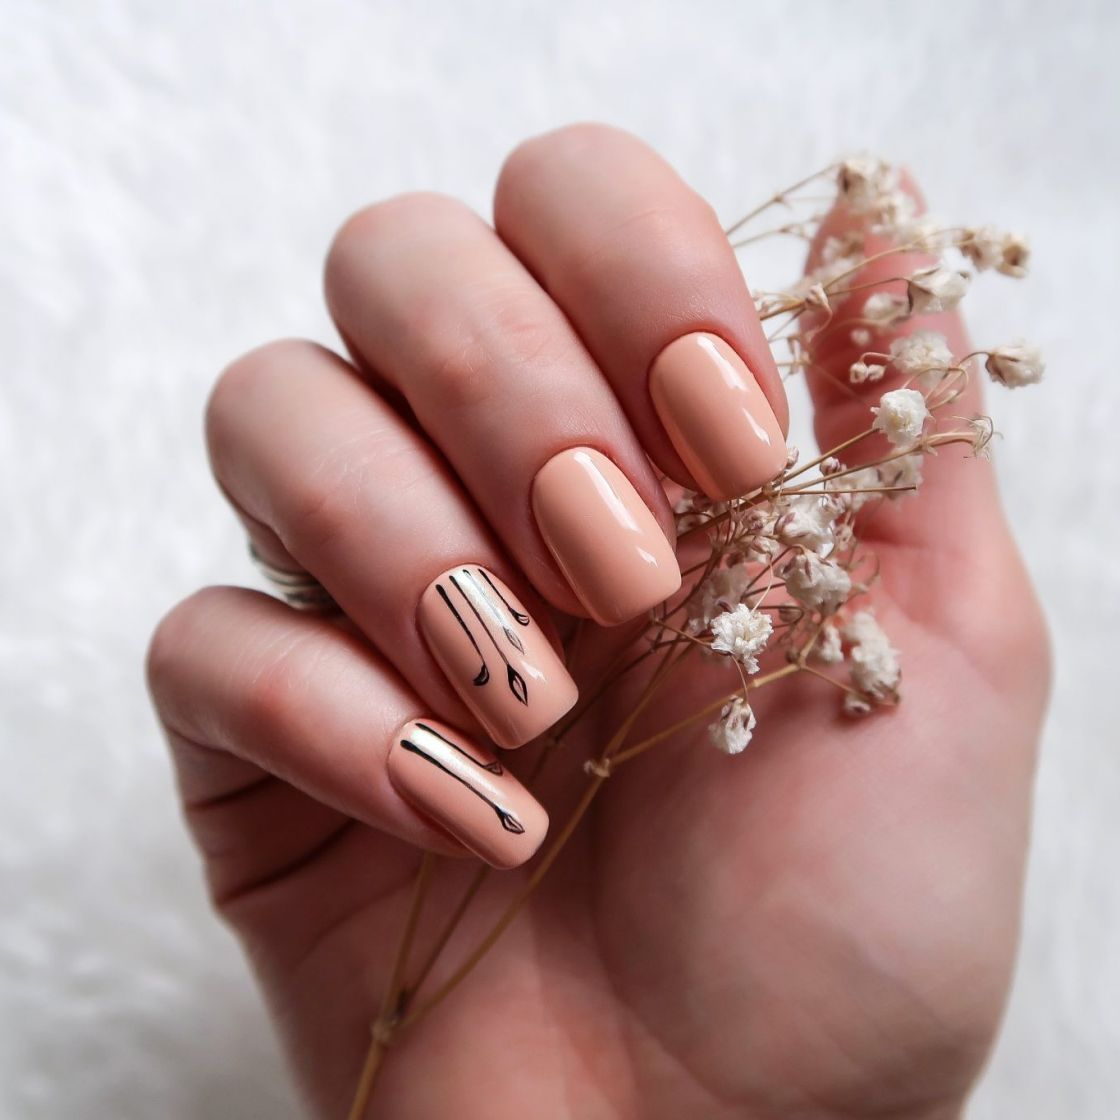 This repair treatment is like Olaplex for nails damaged by gel